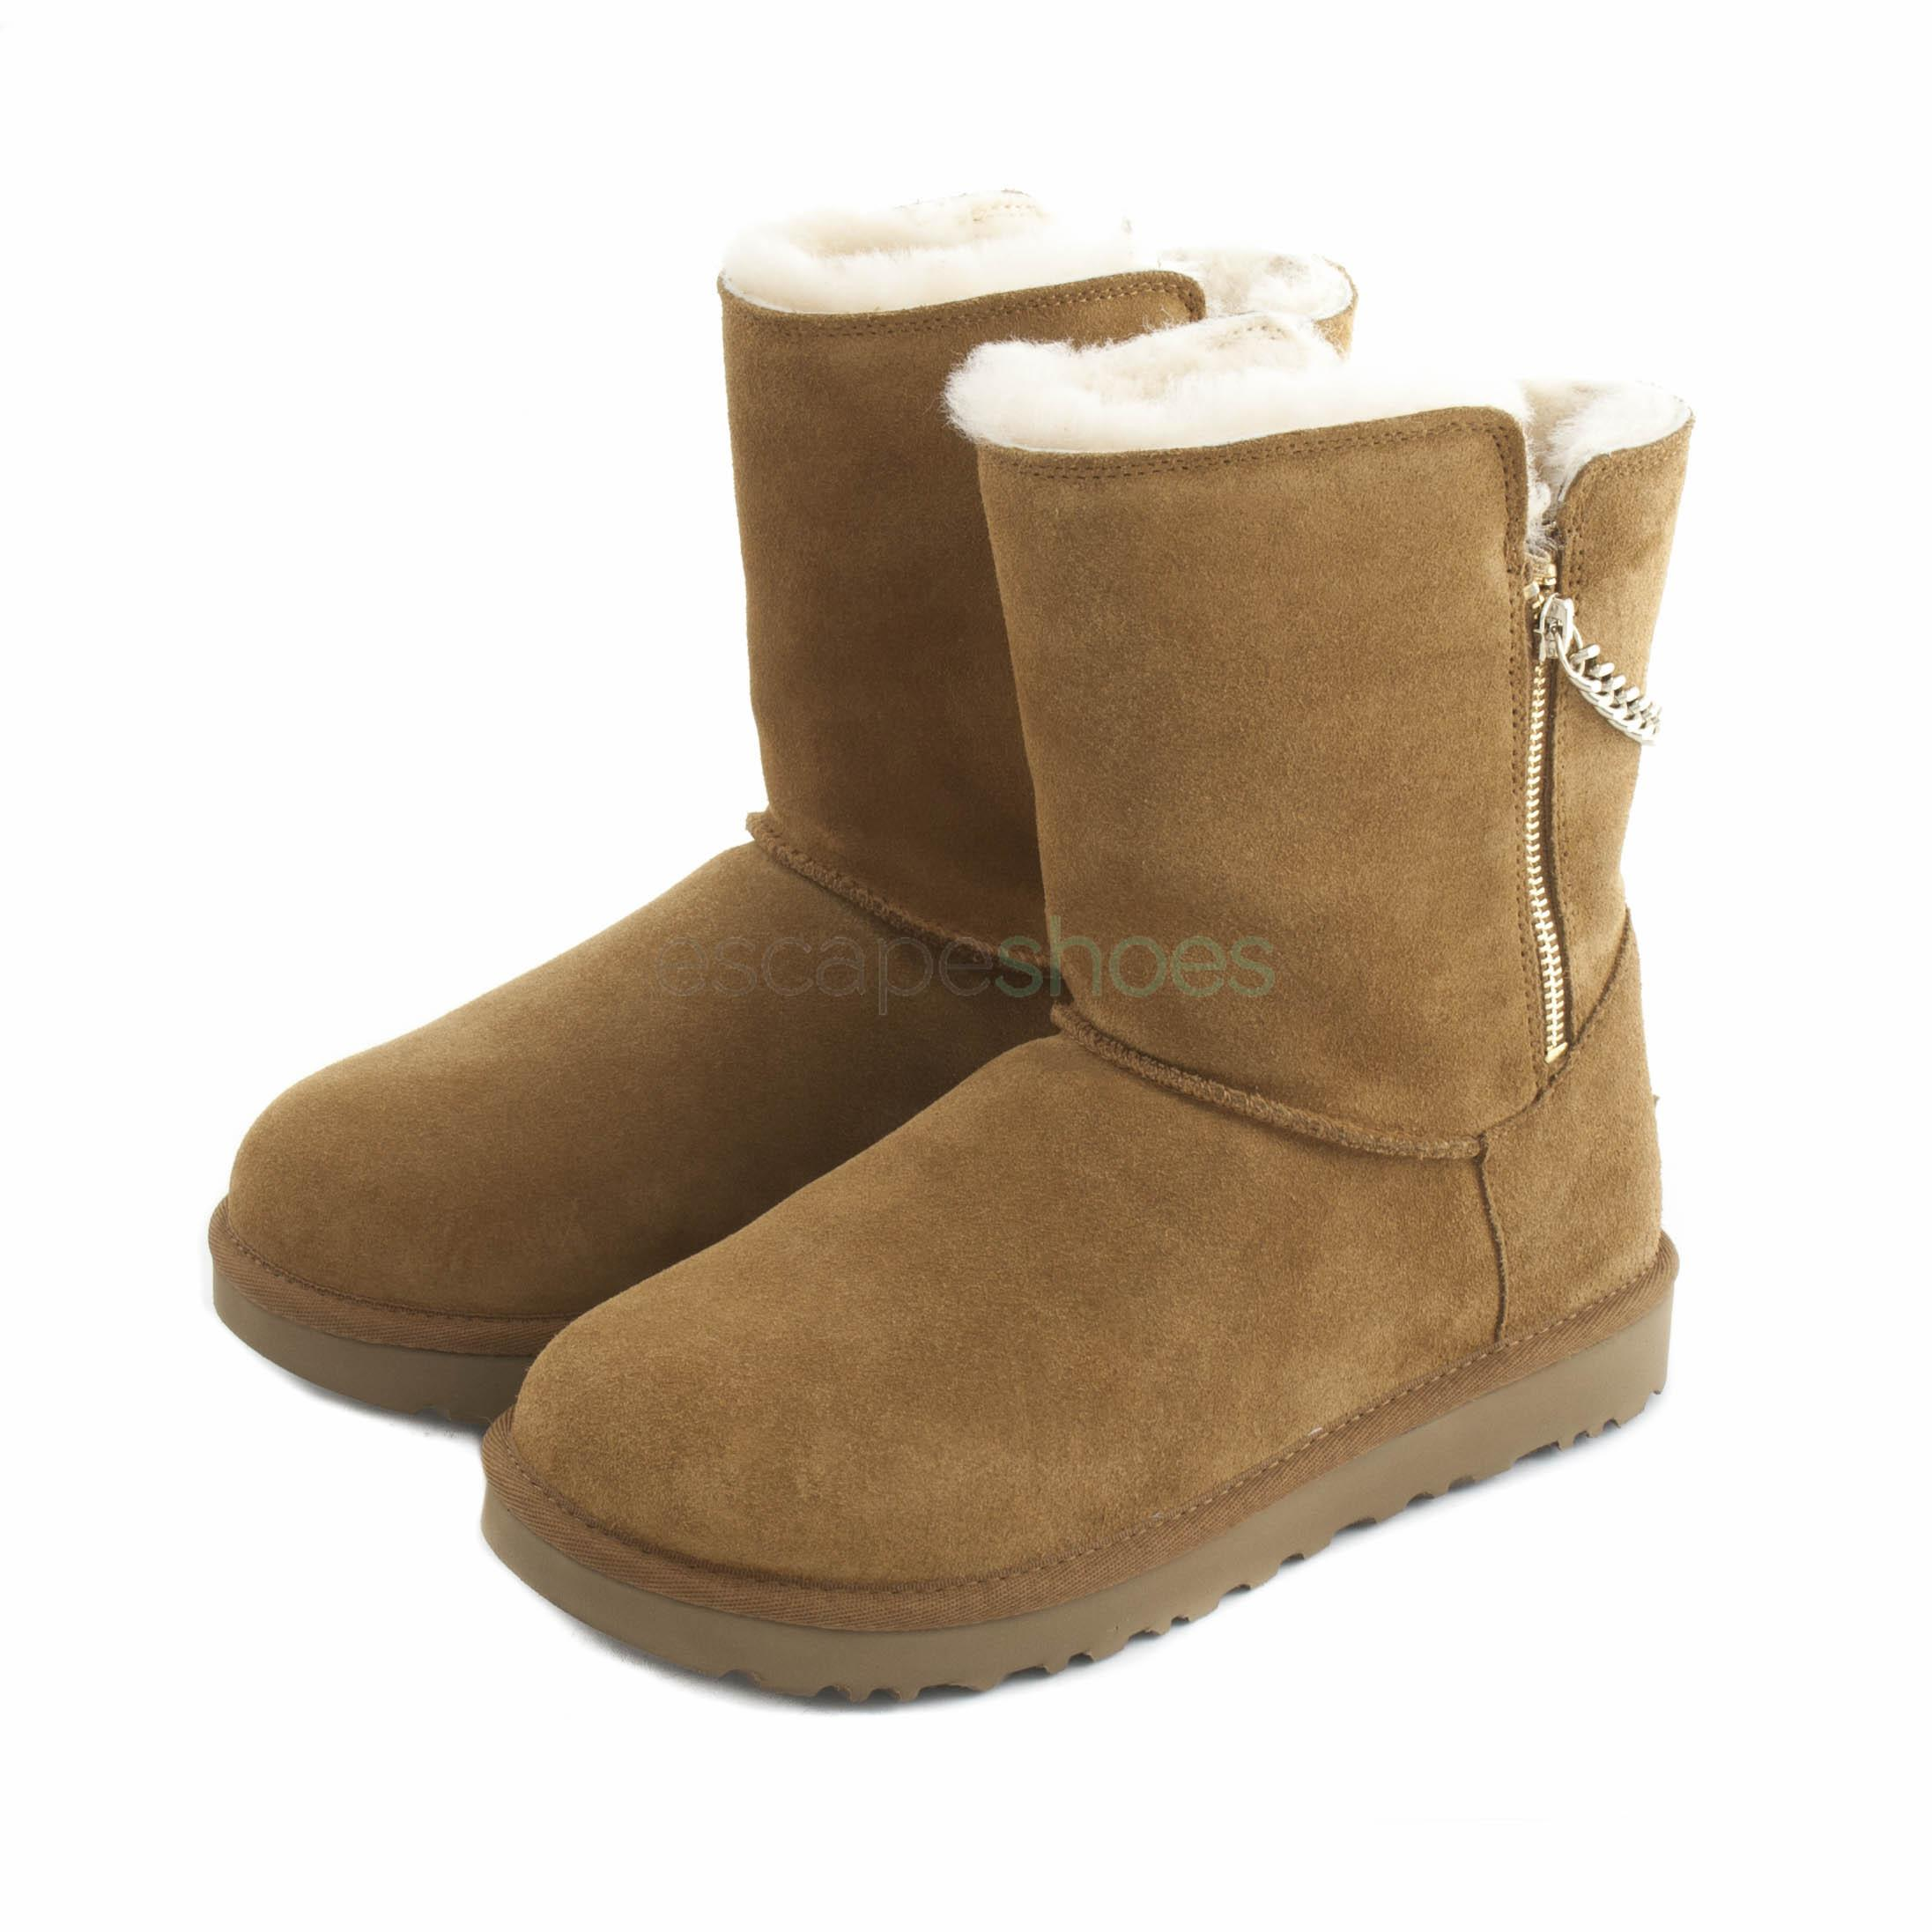 46ba49e36677 Buy your Boots UGG Australia Classic Short Sparkle Zip Brown here ...